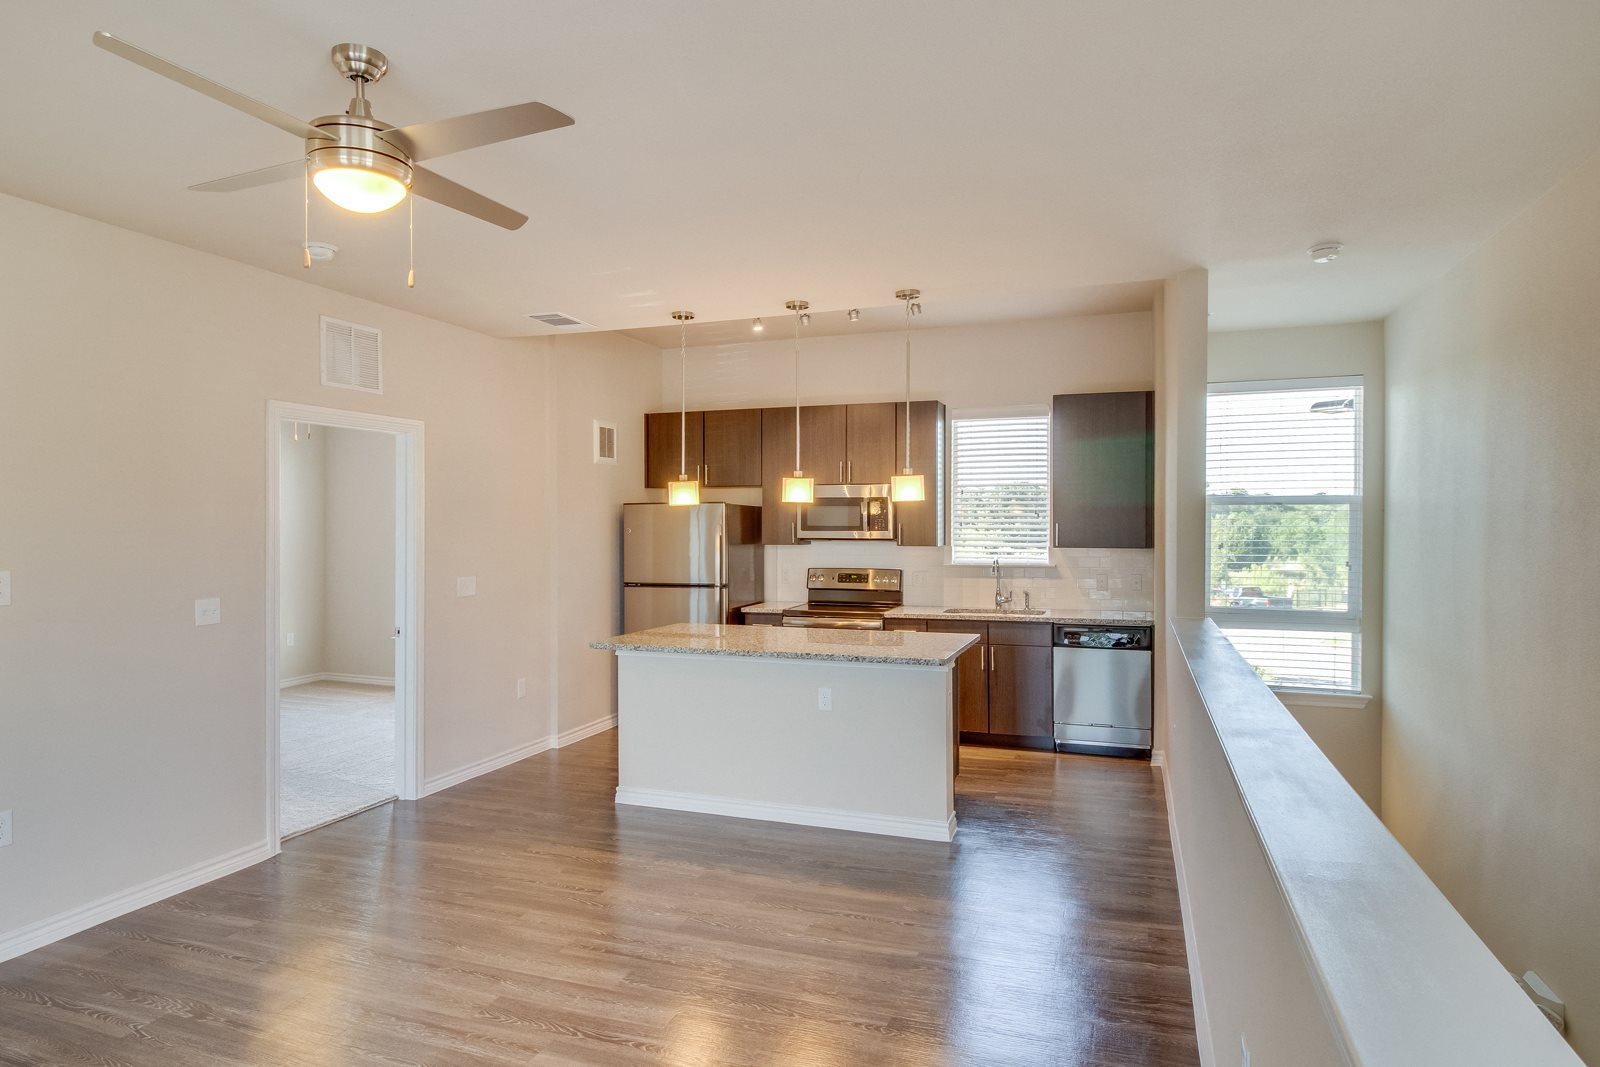 Contemporary Ceiling Fans Throughout at Windsor Republic Place, 5708 W Parmer Lane, Texas